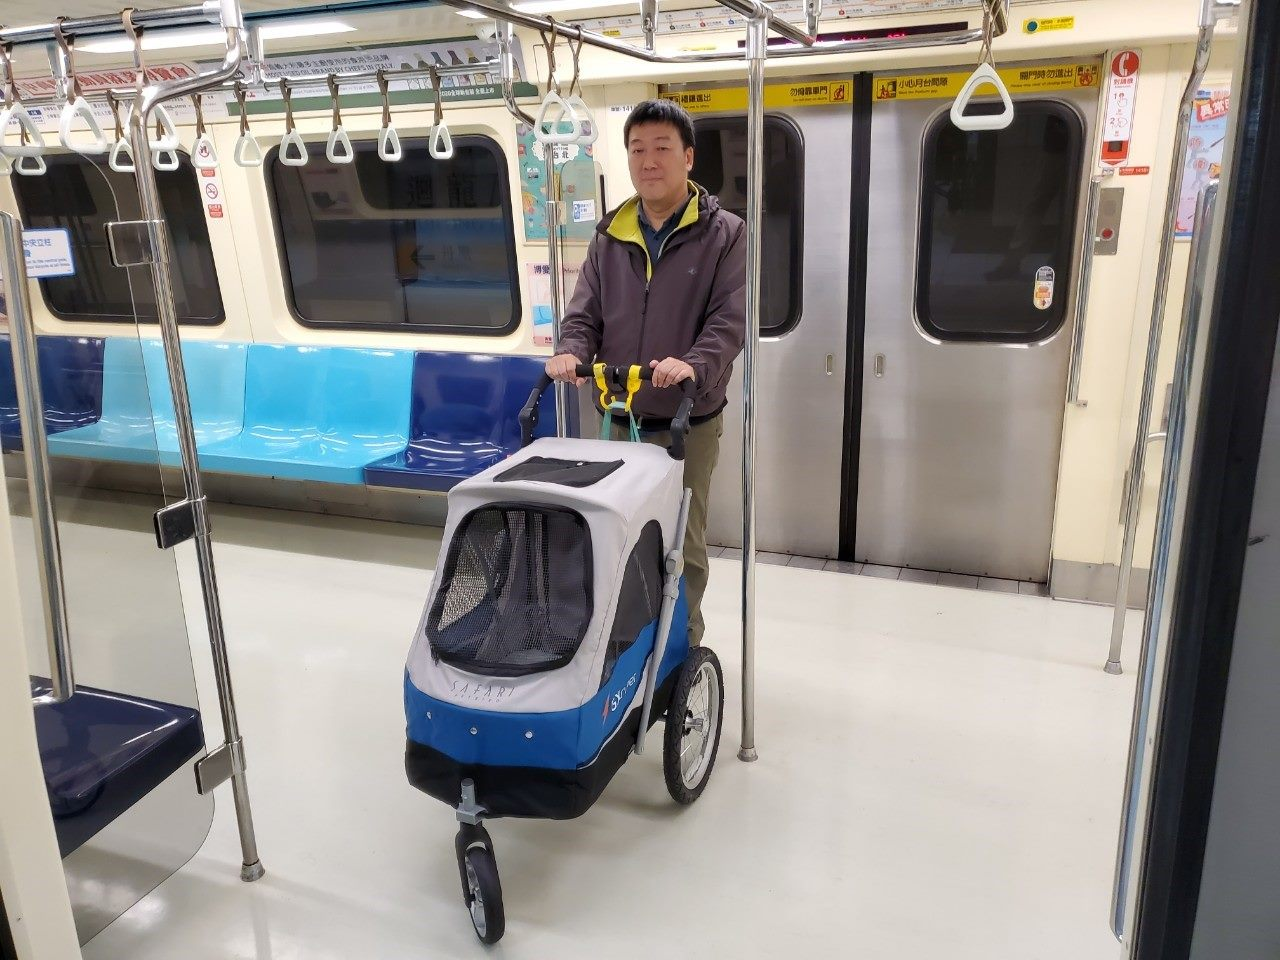 Bringing Pet strollers onto the MRT